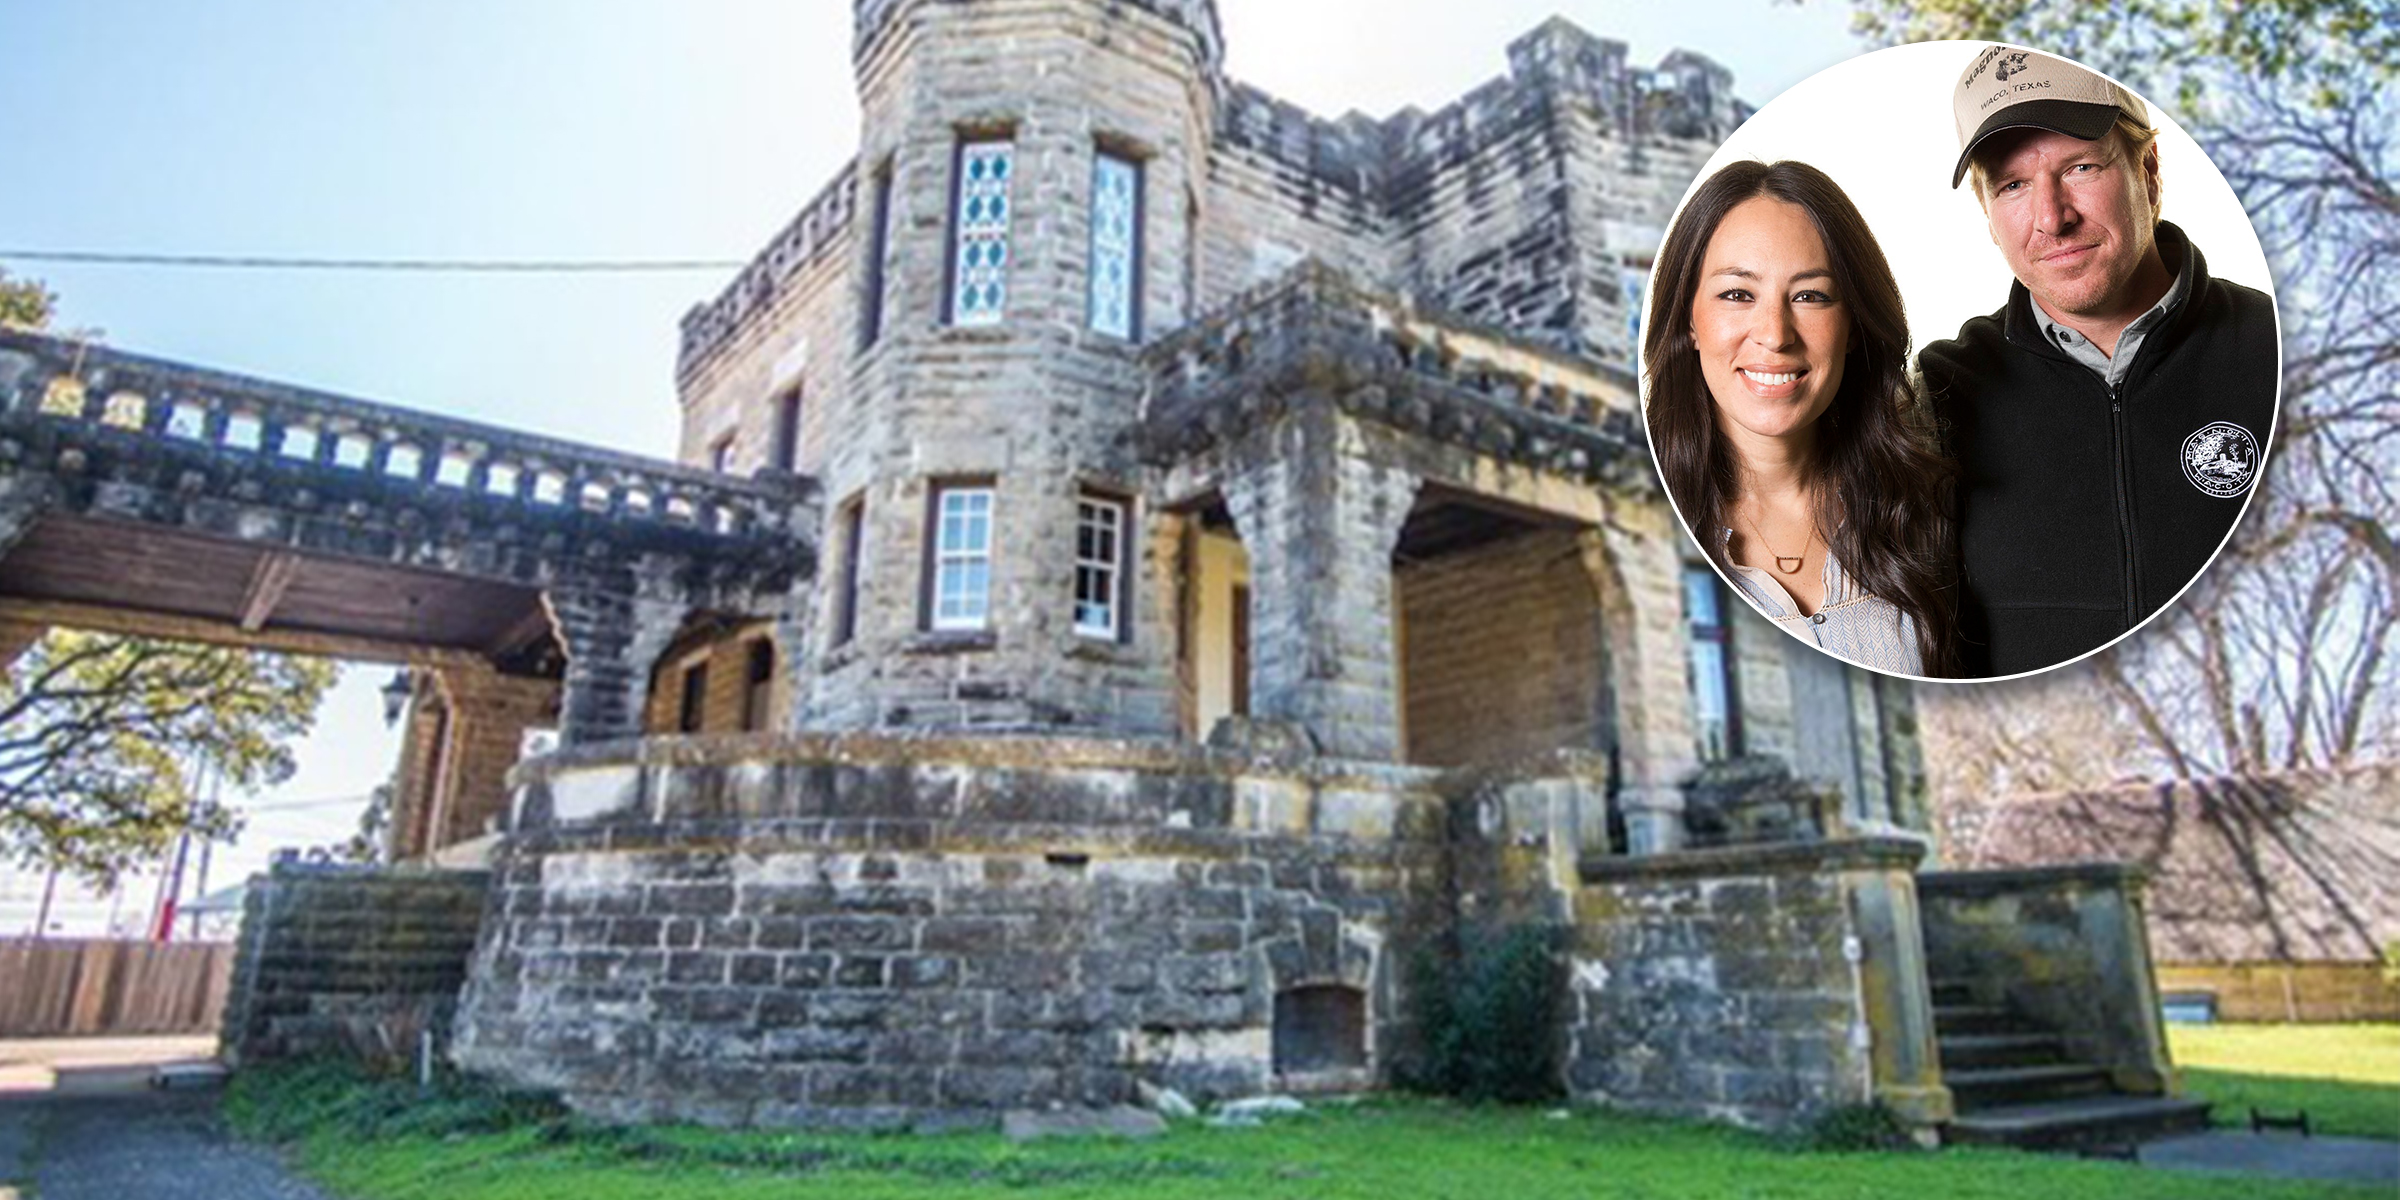 Chips Et Joanna Gaines chip and joanna gaines bought cottonland castle in waco, texas